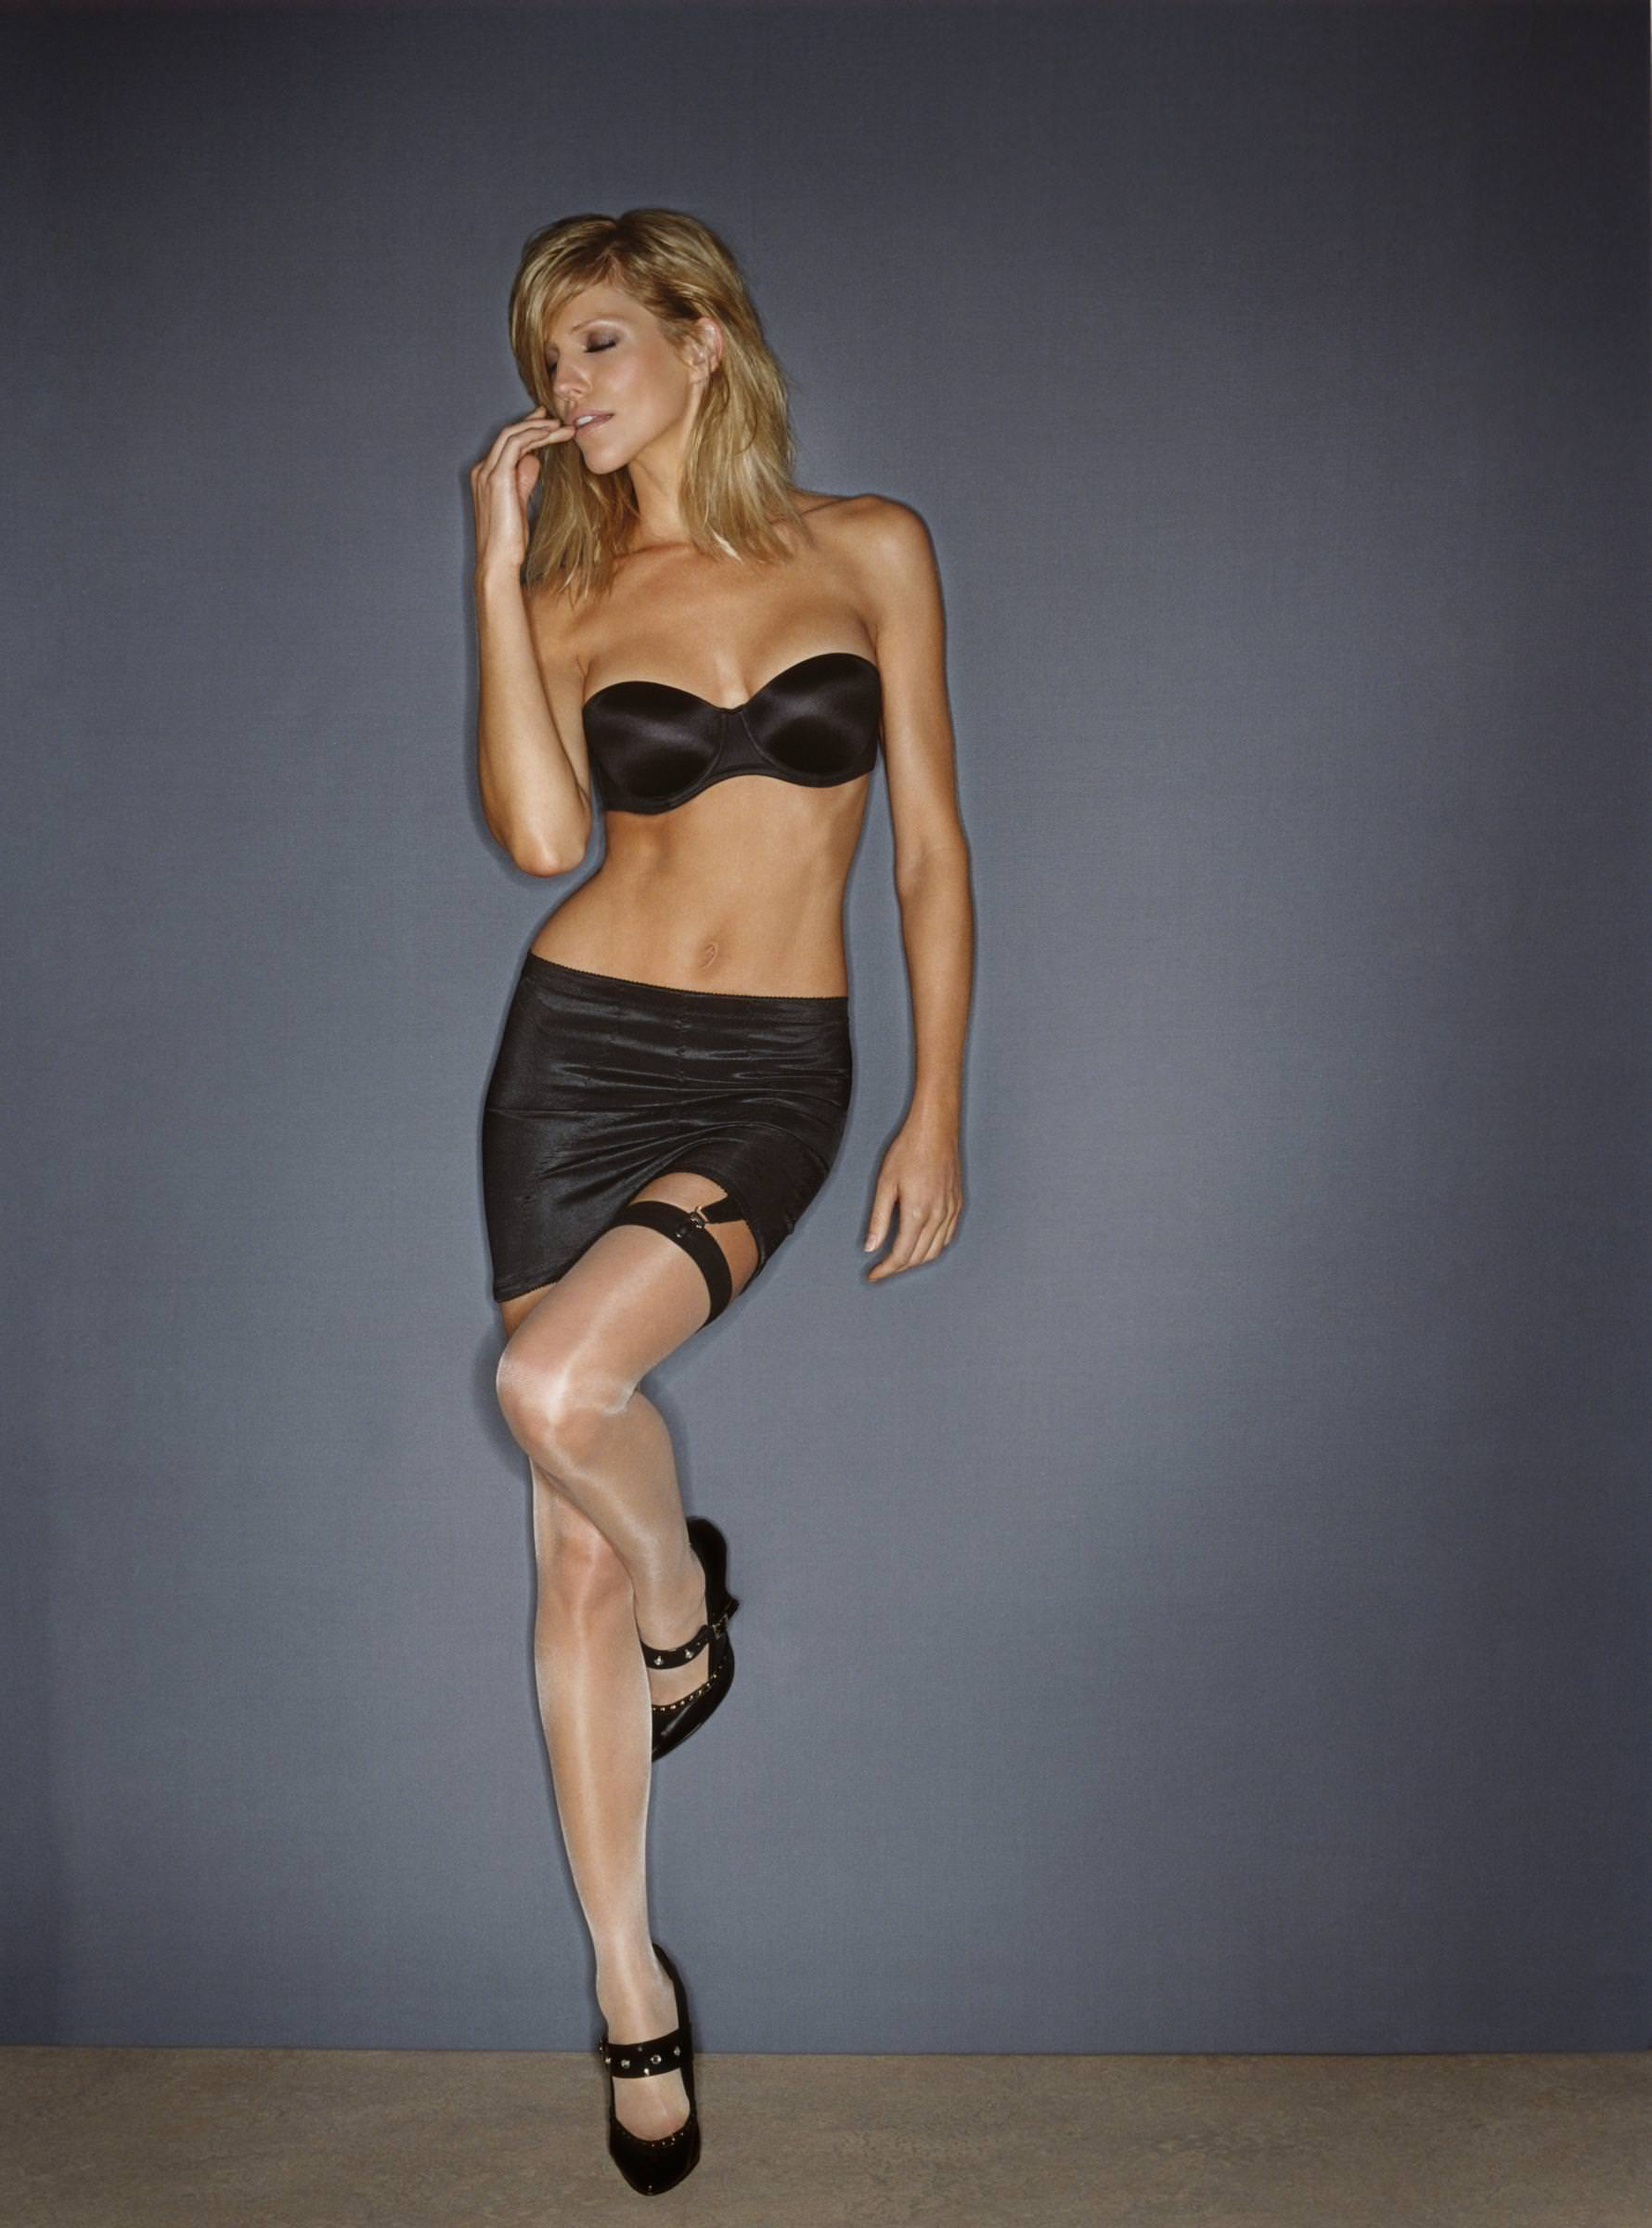 thigh high stockings stay up and seductive lingerie